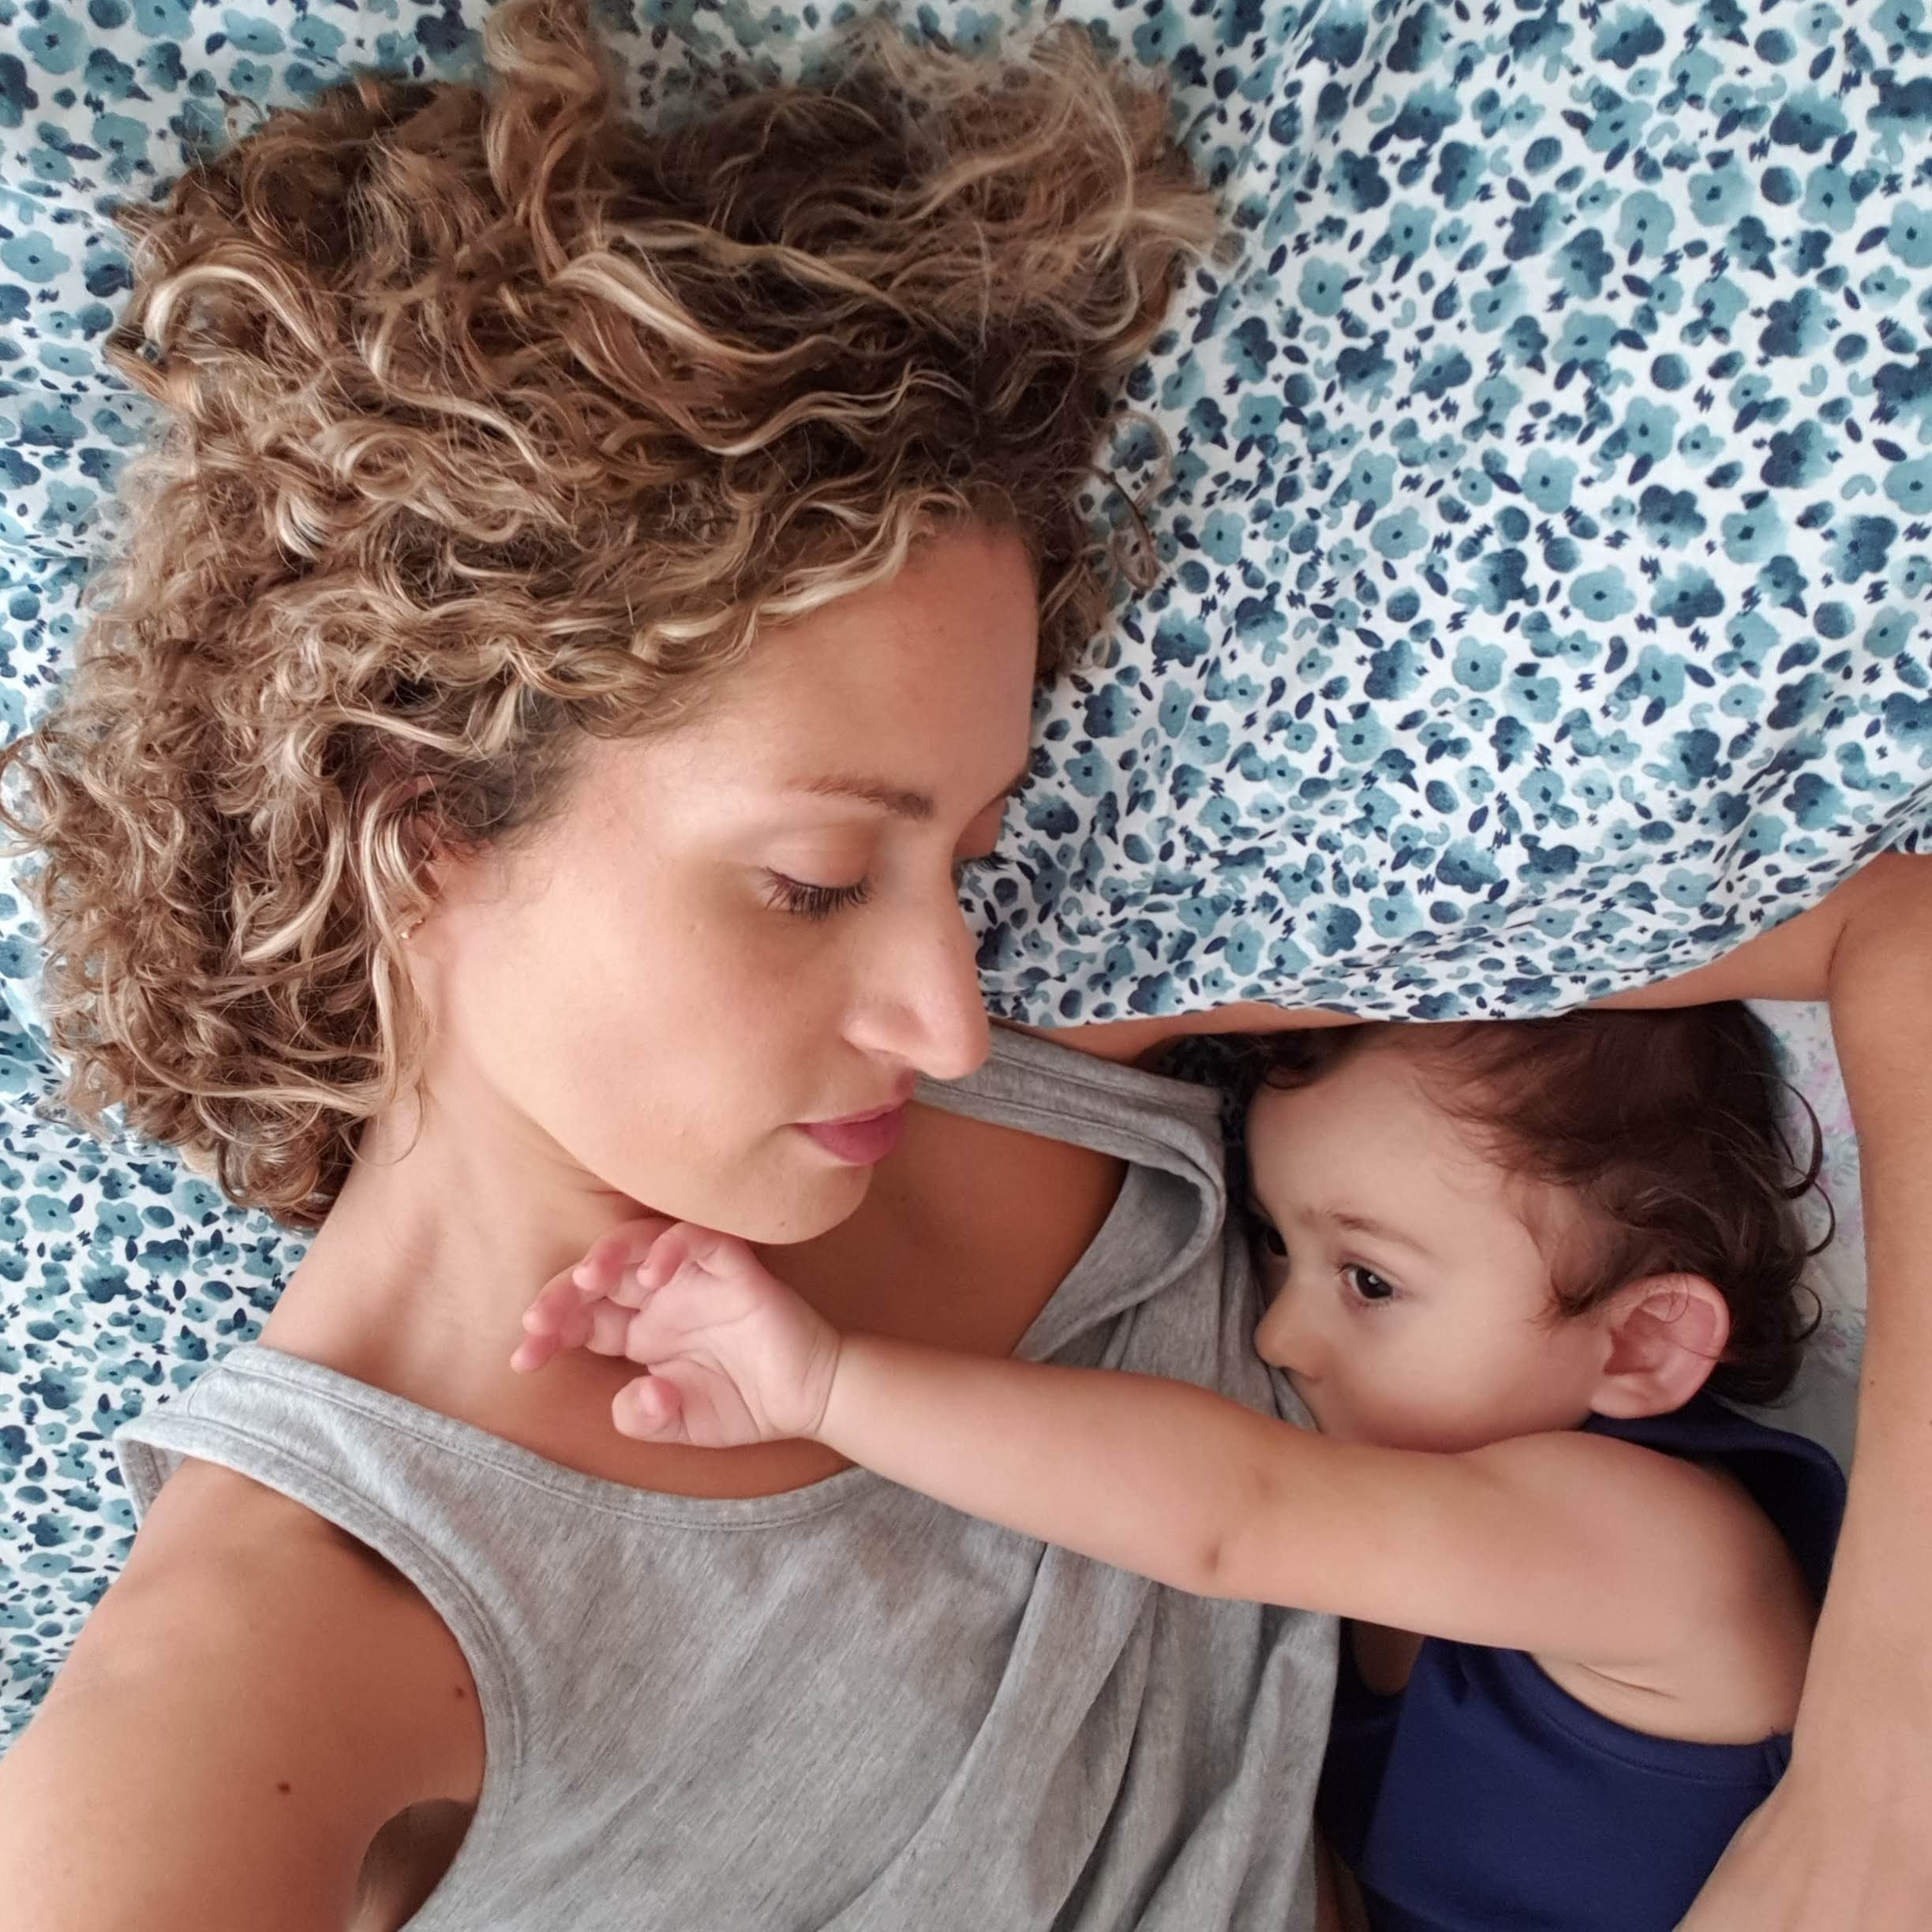 breastfeeding was such a lovely bonding experience - themamadaze.com